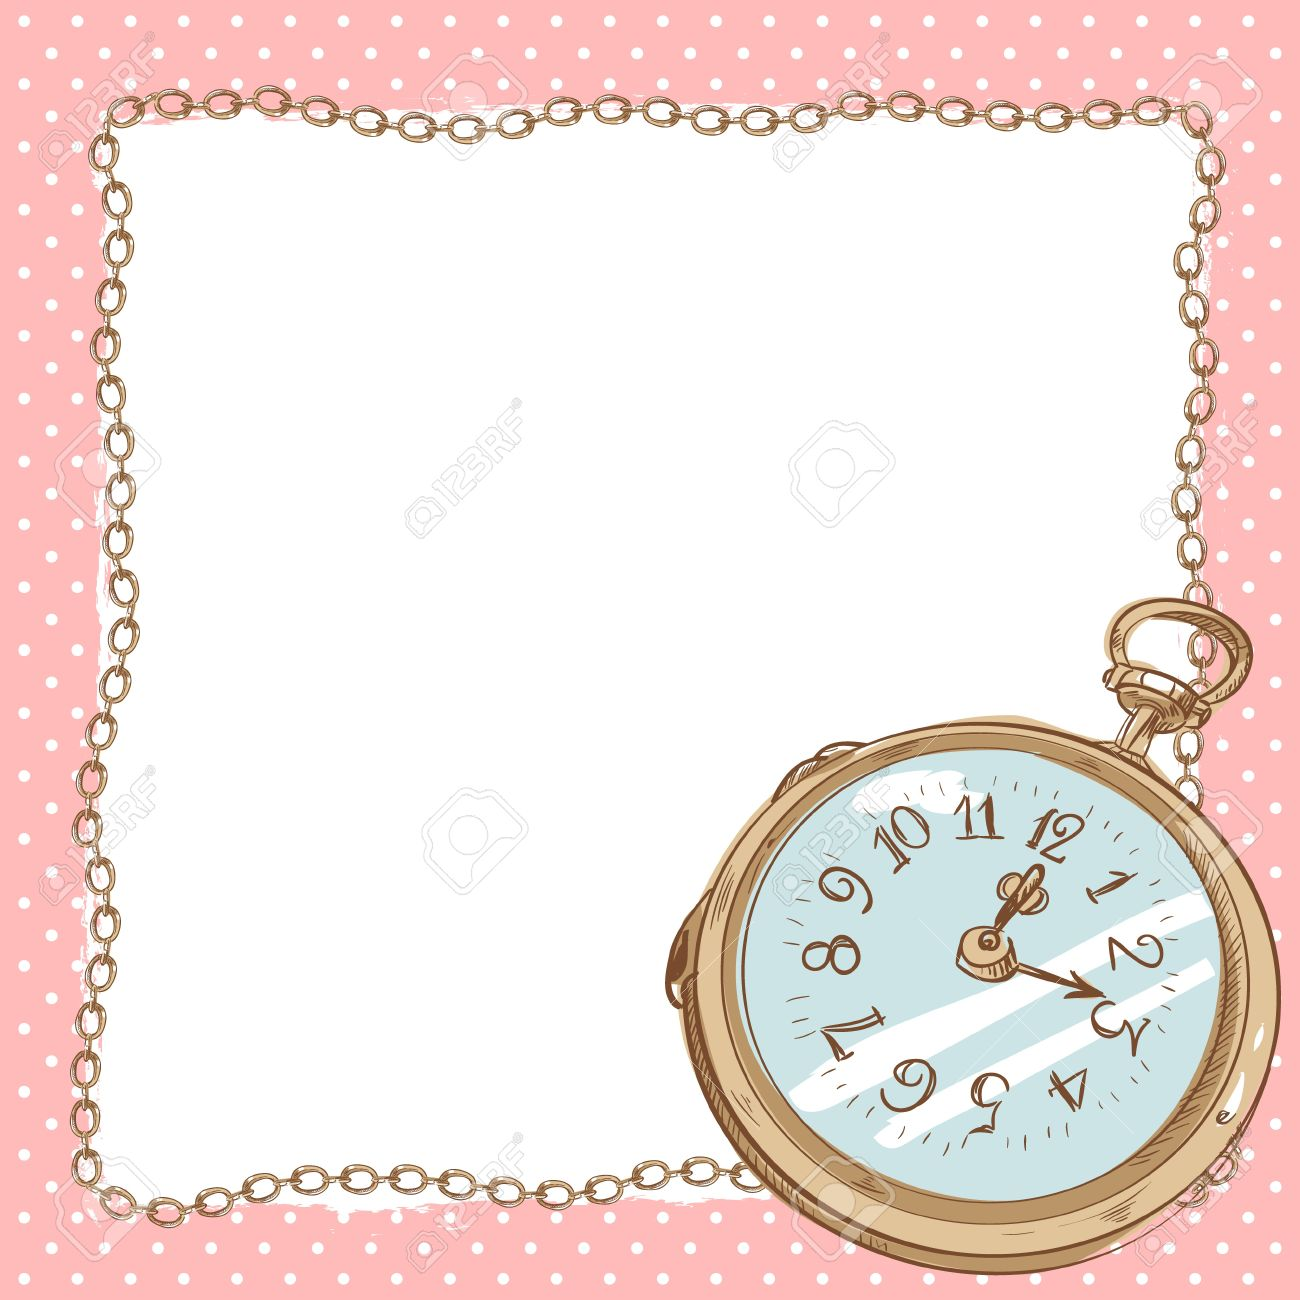 Lovely romantic postcard with ancient pocket watch with vintage lovely romantic postcard with ancient pocket watch with vintage chain border with blank space for text jeuxipadfo Image collections